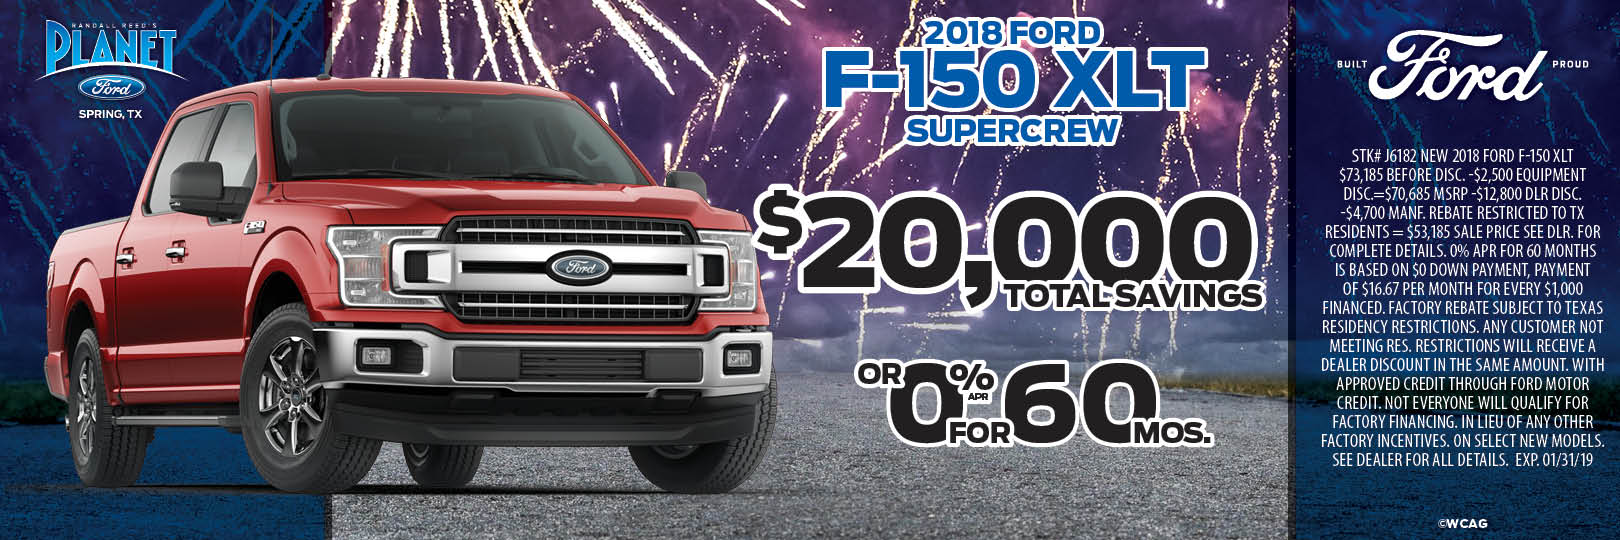 Planet Ford F-150